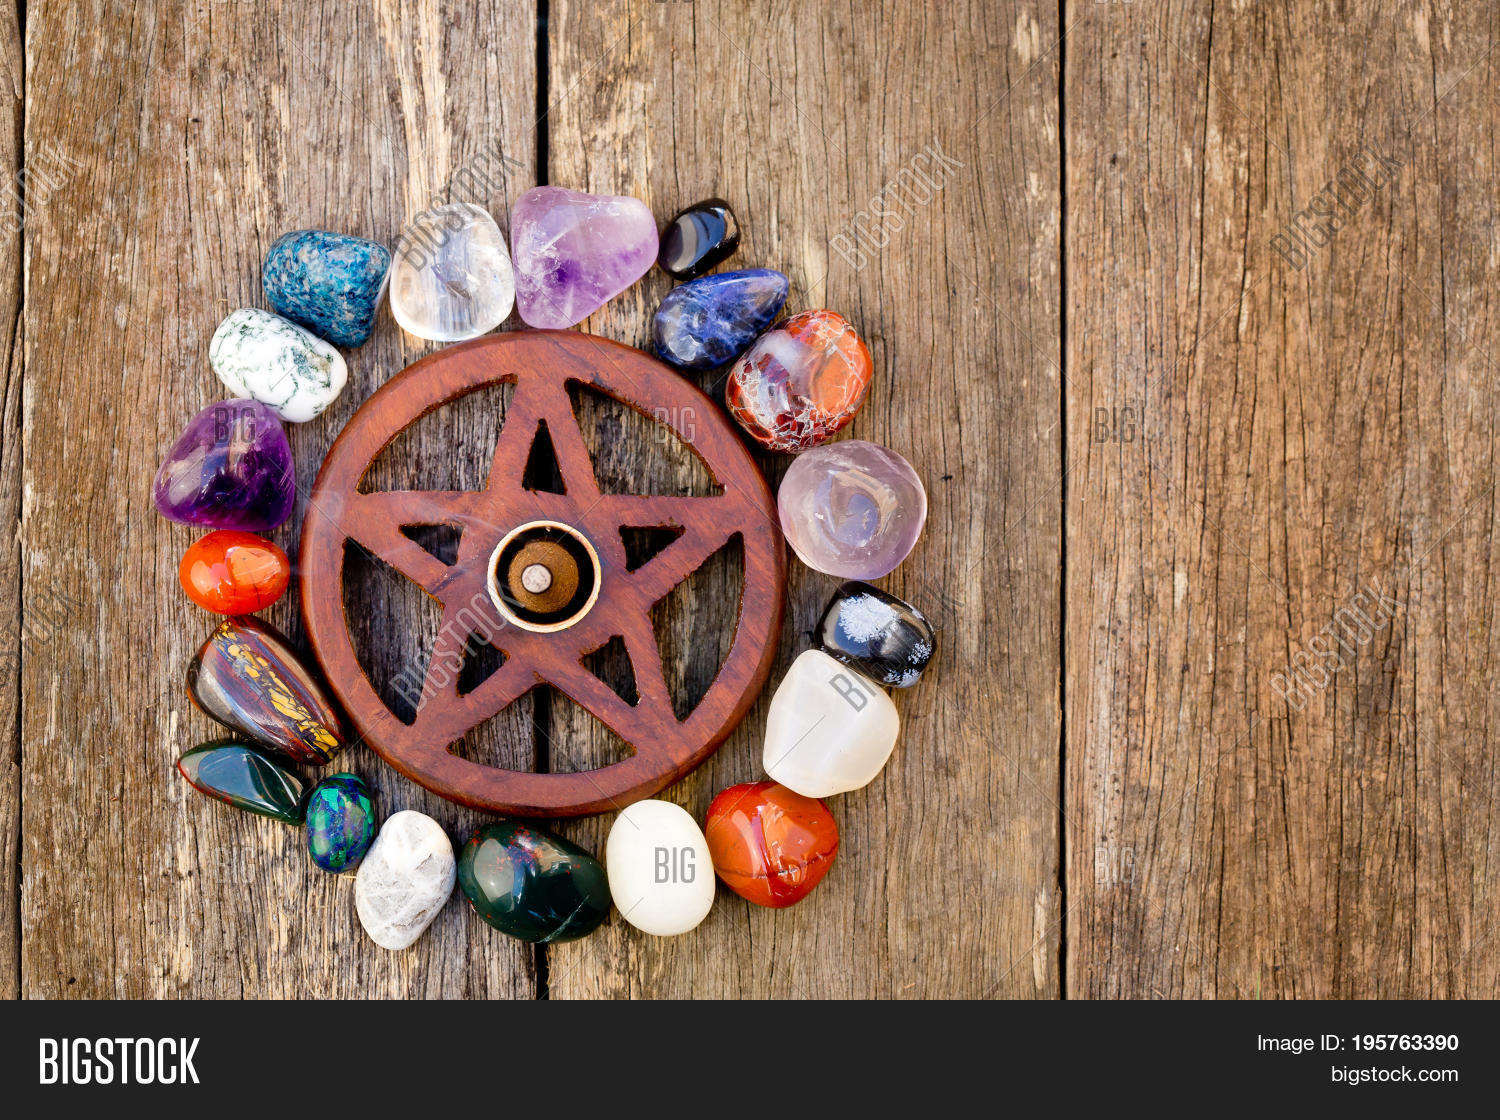 Wooden Wiccan Image & Photo (Free Trial) | Bigstock